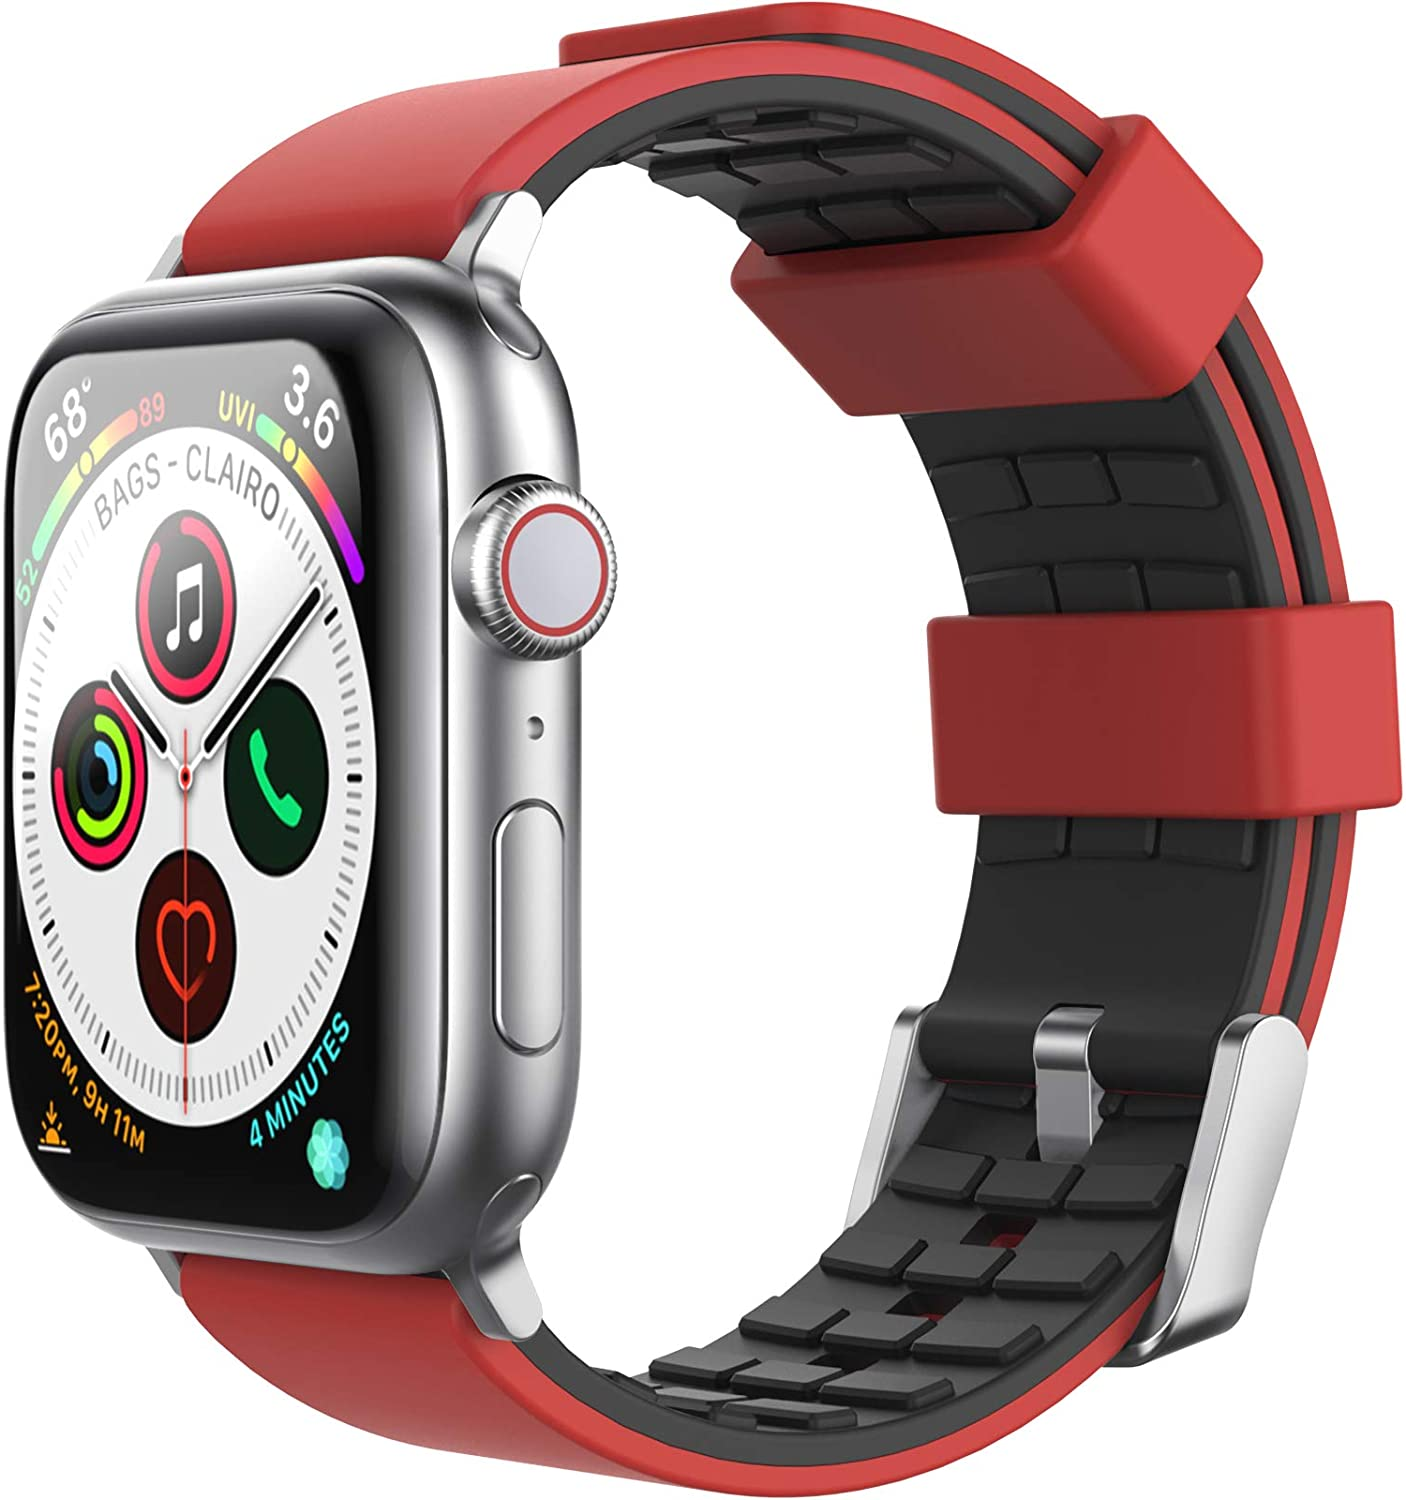 AhaStyle Duotone Band for Apple Watch 44mm 42mm, Breathable Silicone Band Strap Wristband Compatible with Apple Watch Series SE/6/5/4/3/2/1 (Red, Black, 42mm/44mm)